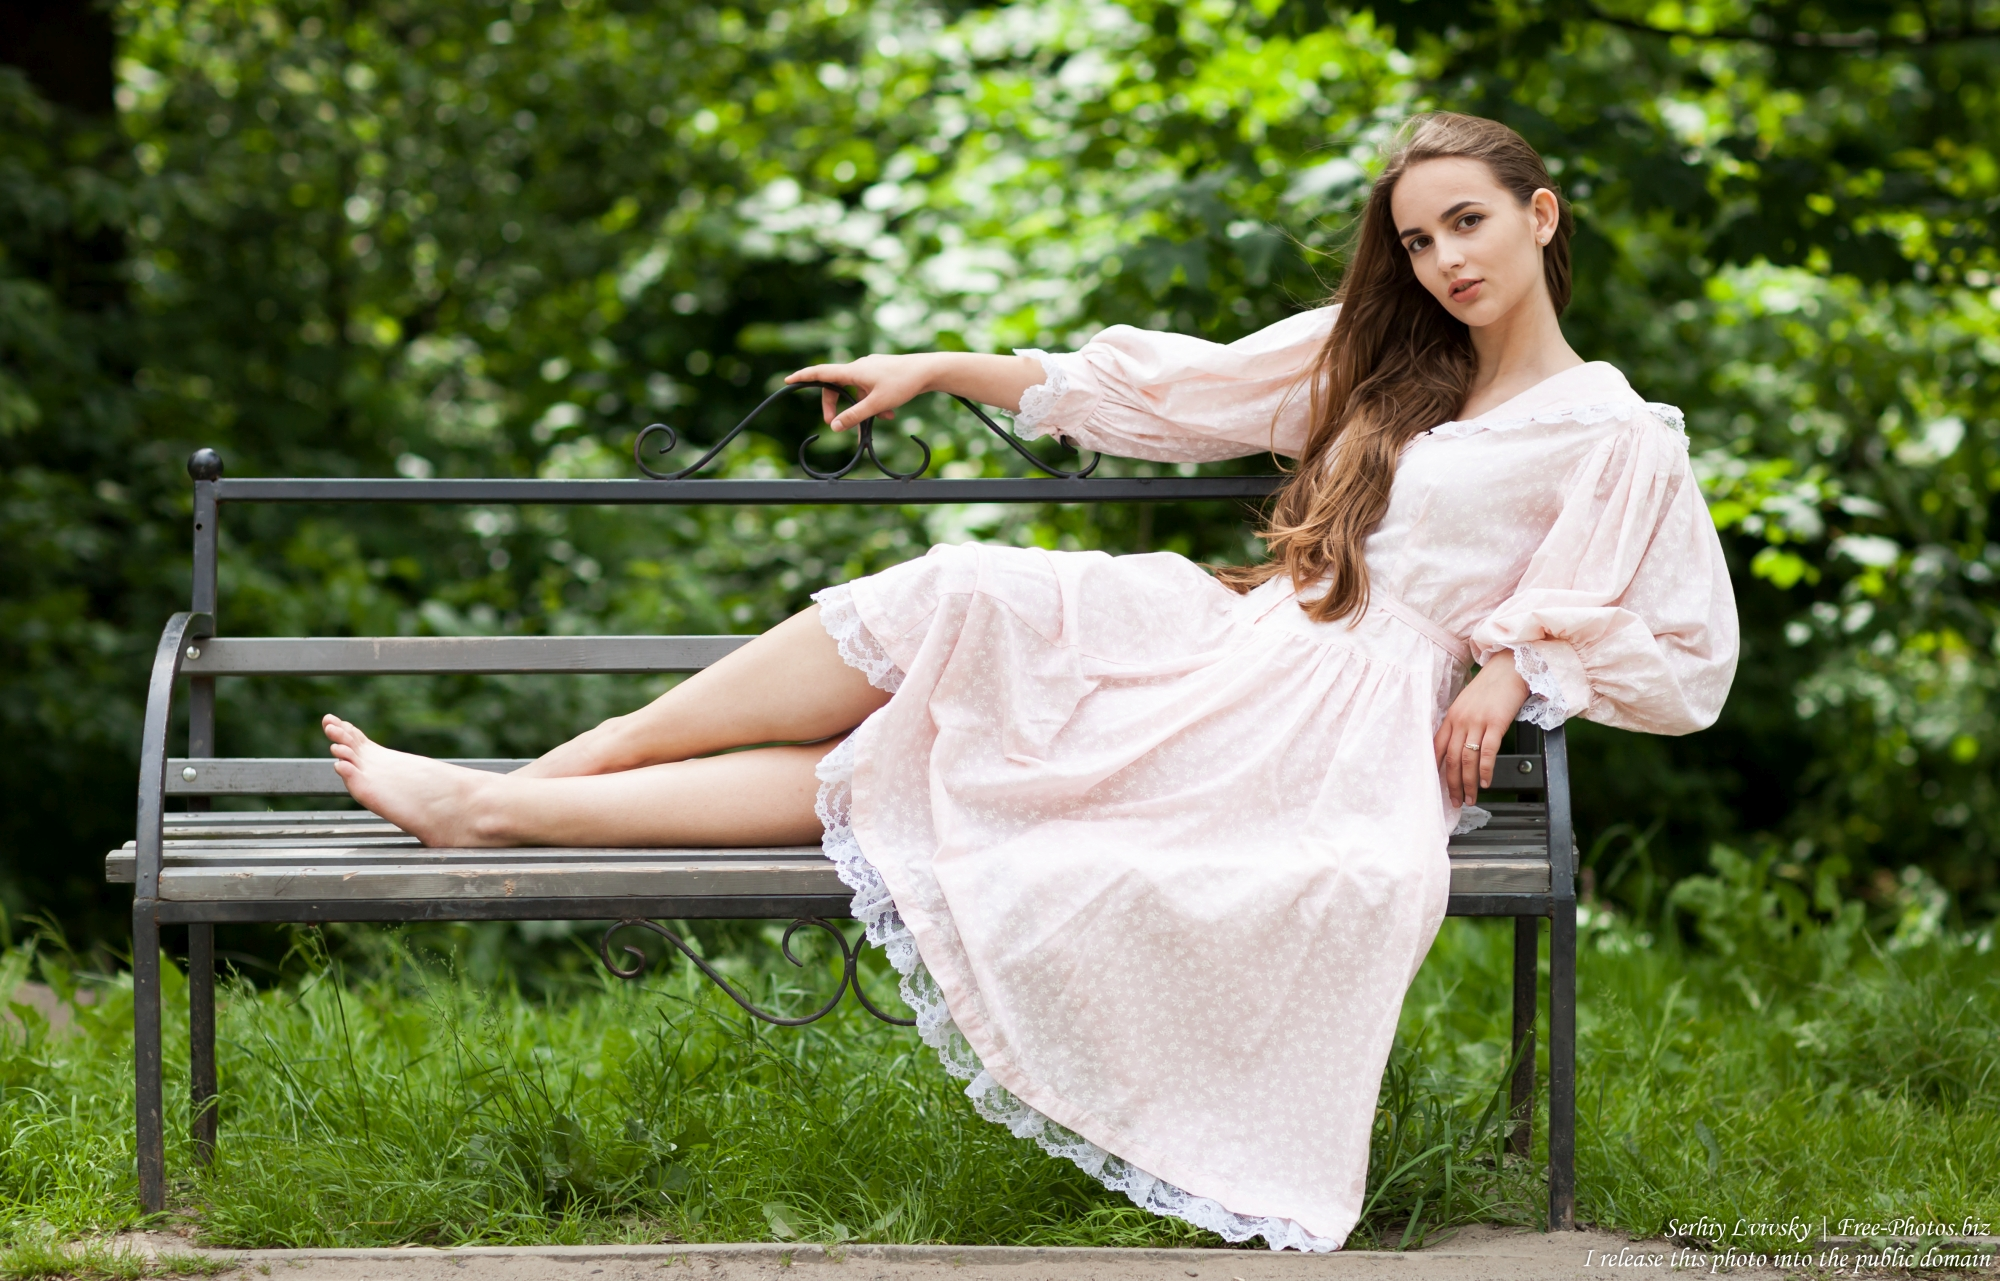 vika_a_19-year-old_girl_with_natural_fair_hair_photographed_in_june_2017_by_serhiy_lvivsky_29